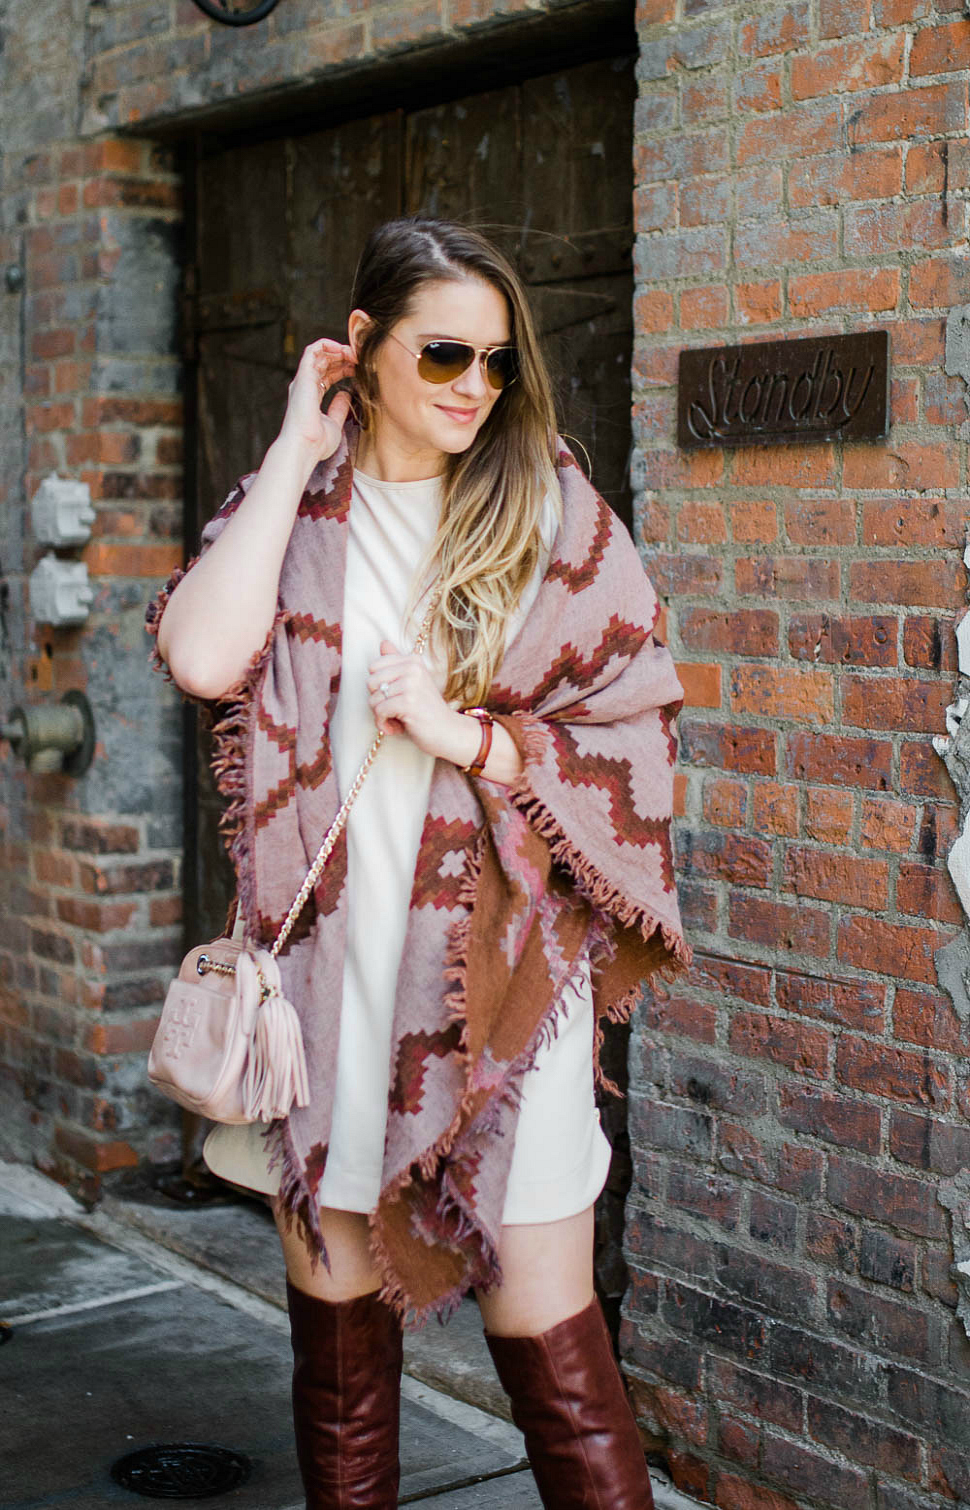 standby-detroit-bar-city-guide-things-to-do-in-detroit-rosecitystyleguide-outfit-aritzia-scarf-over-the-knee-boots-shirt-dress-canadianblogger-17